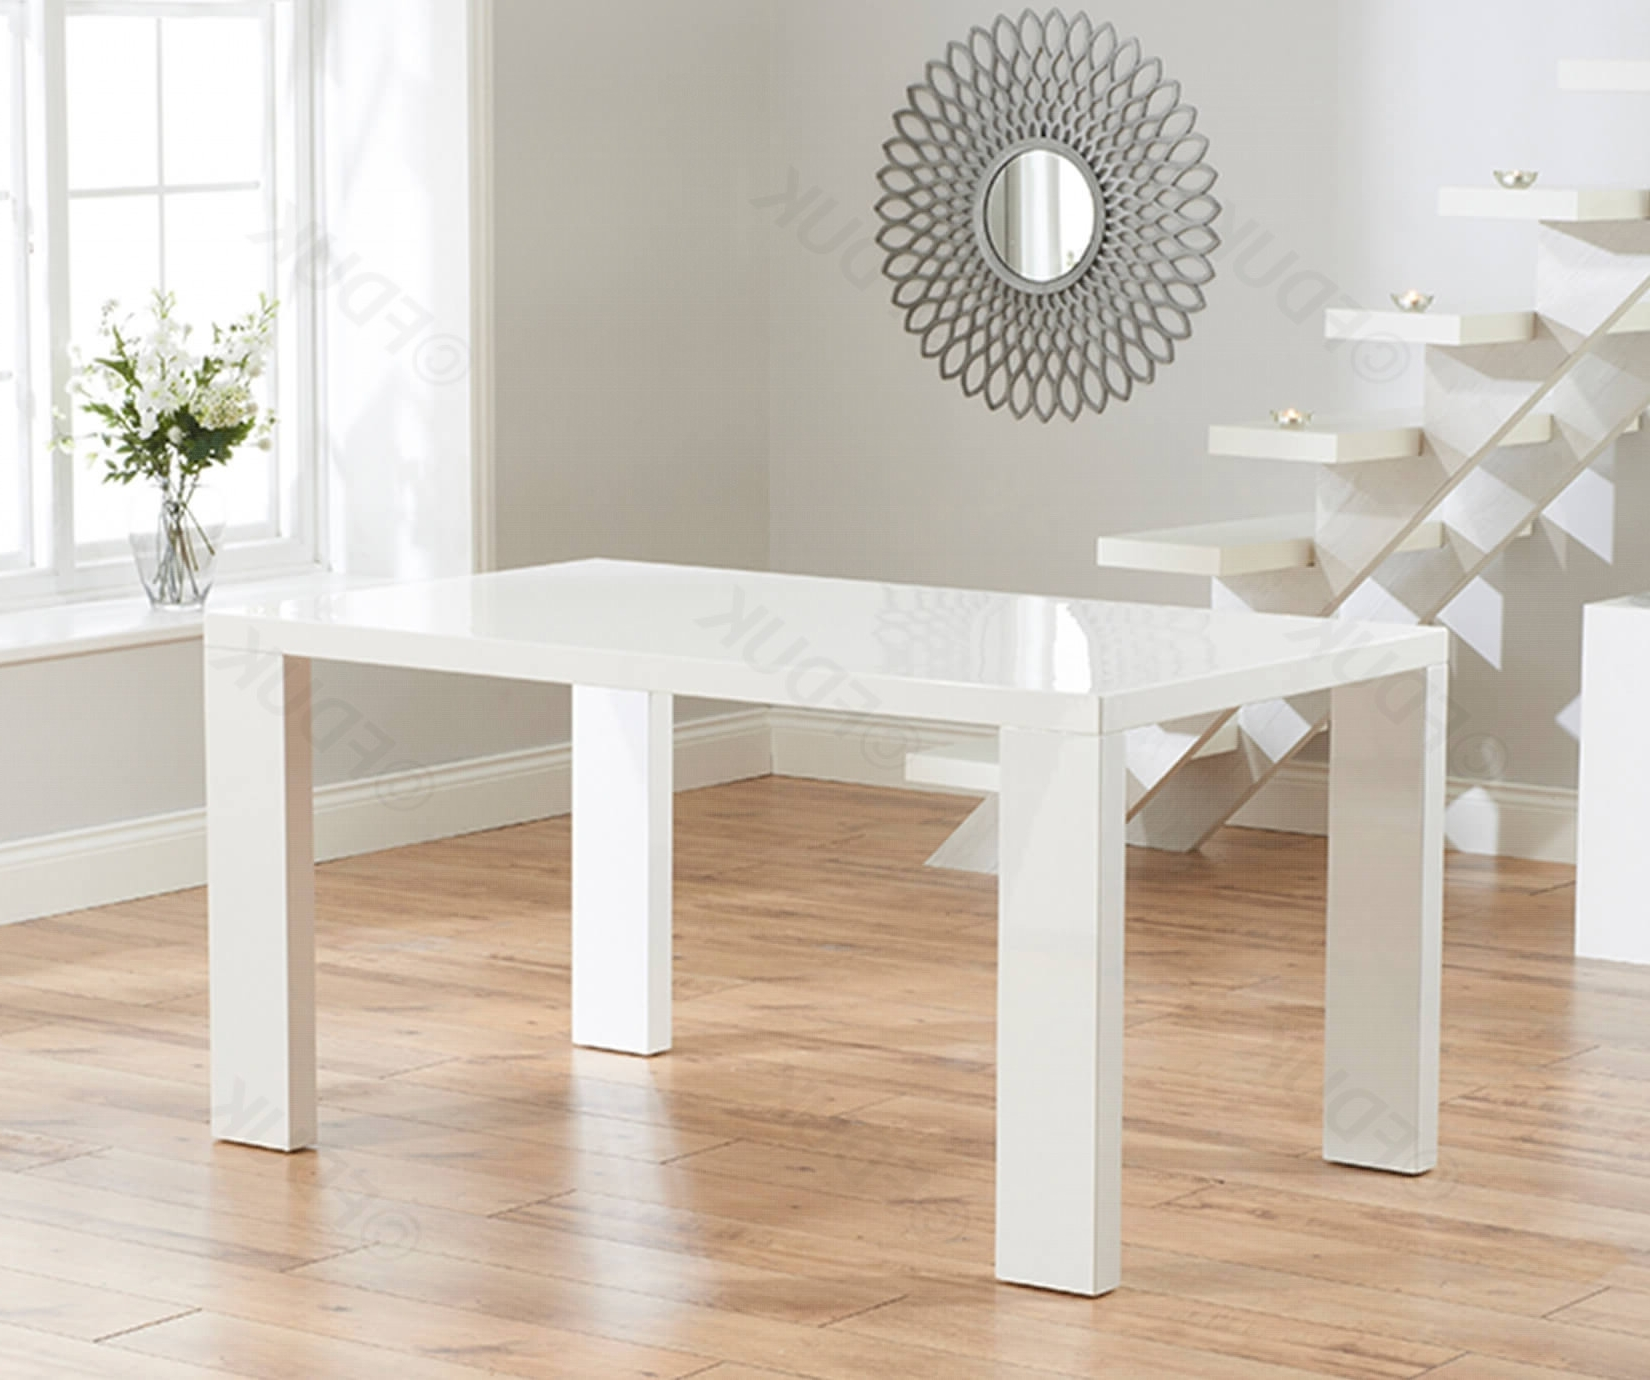 Metz 150Cm White High Gloss Dining Table (View 12 of 25)